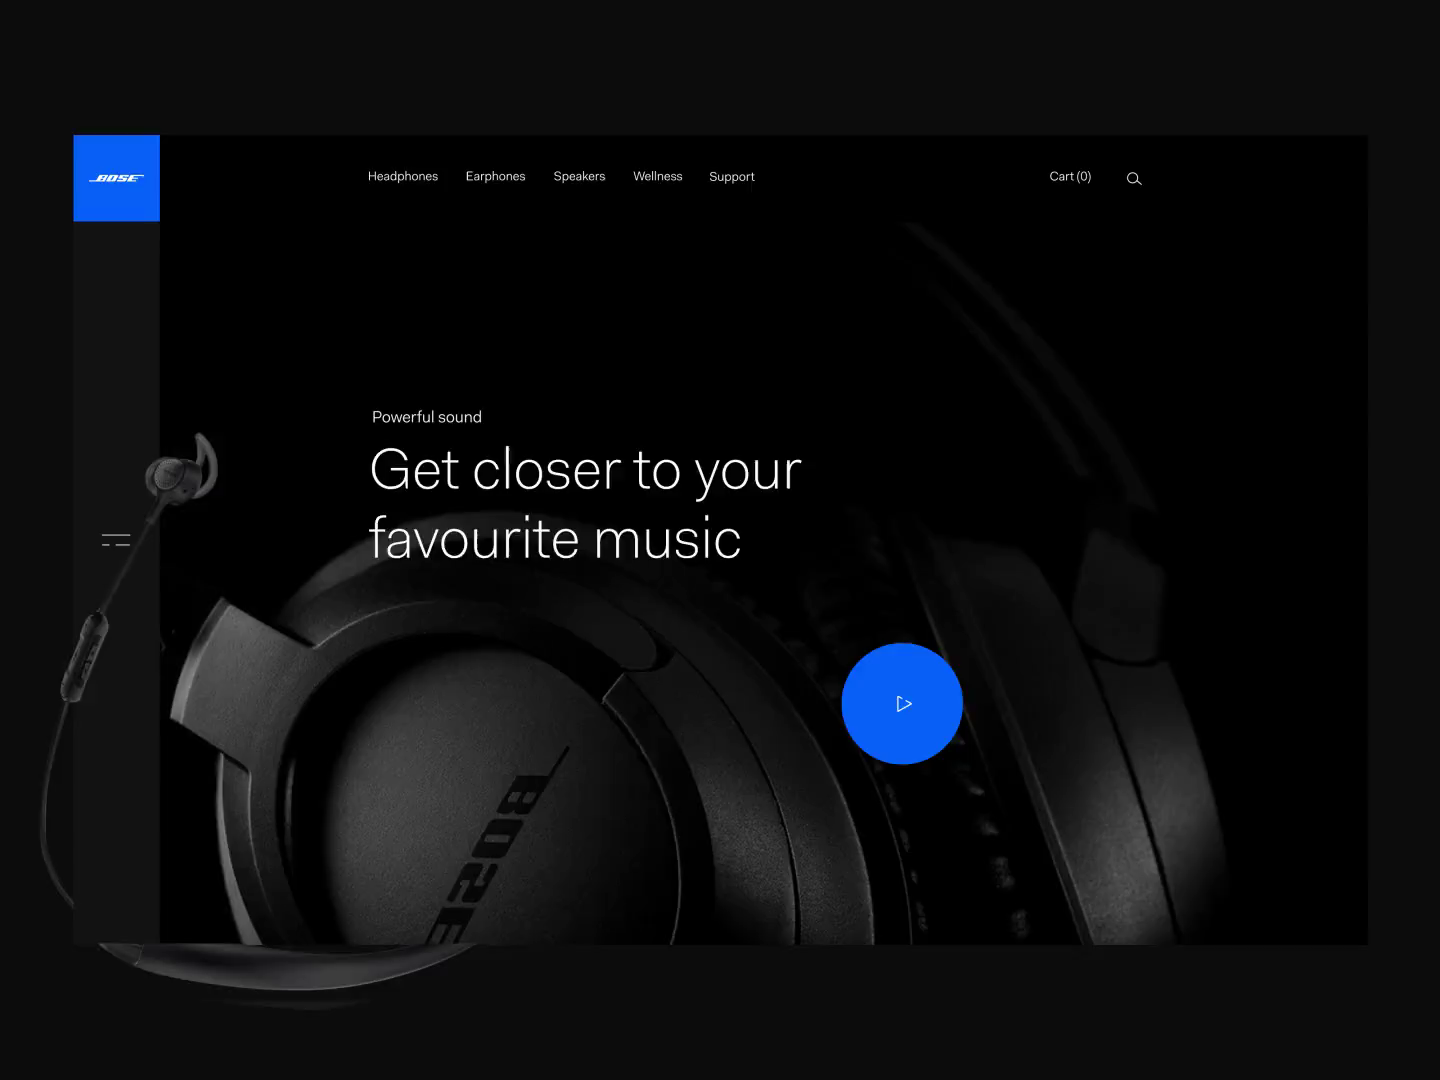 Bose - Redesign by Adrien Laurent on Dribbble